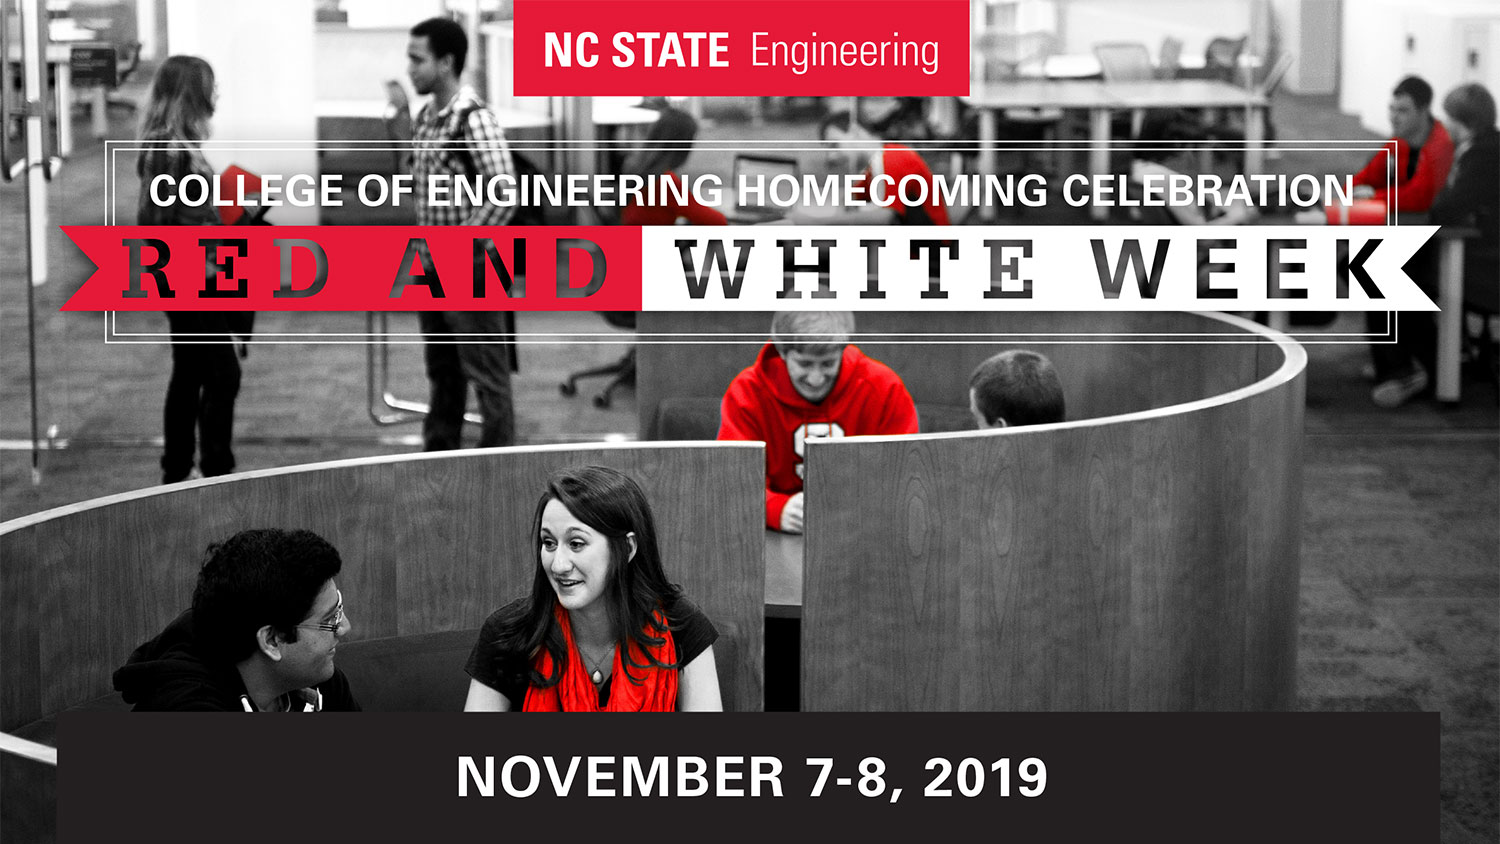 College of Engineering Homecoming Celebration, November 7-8, 2019, Red and White Week